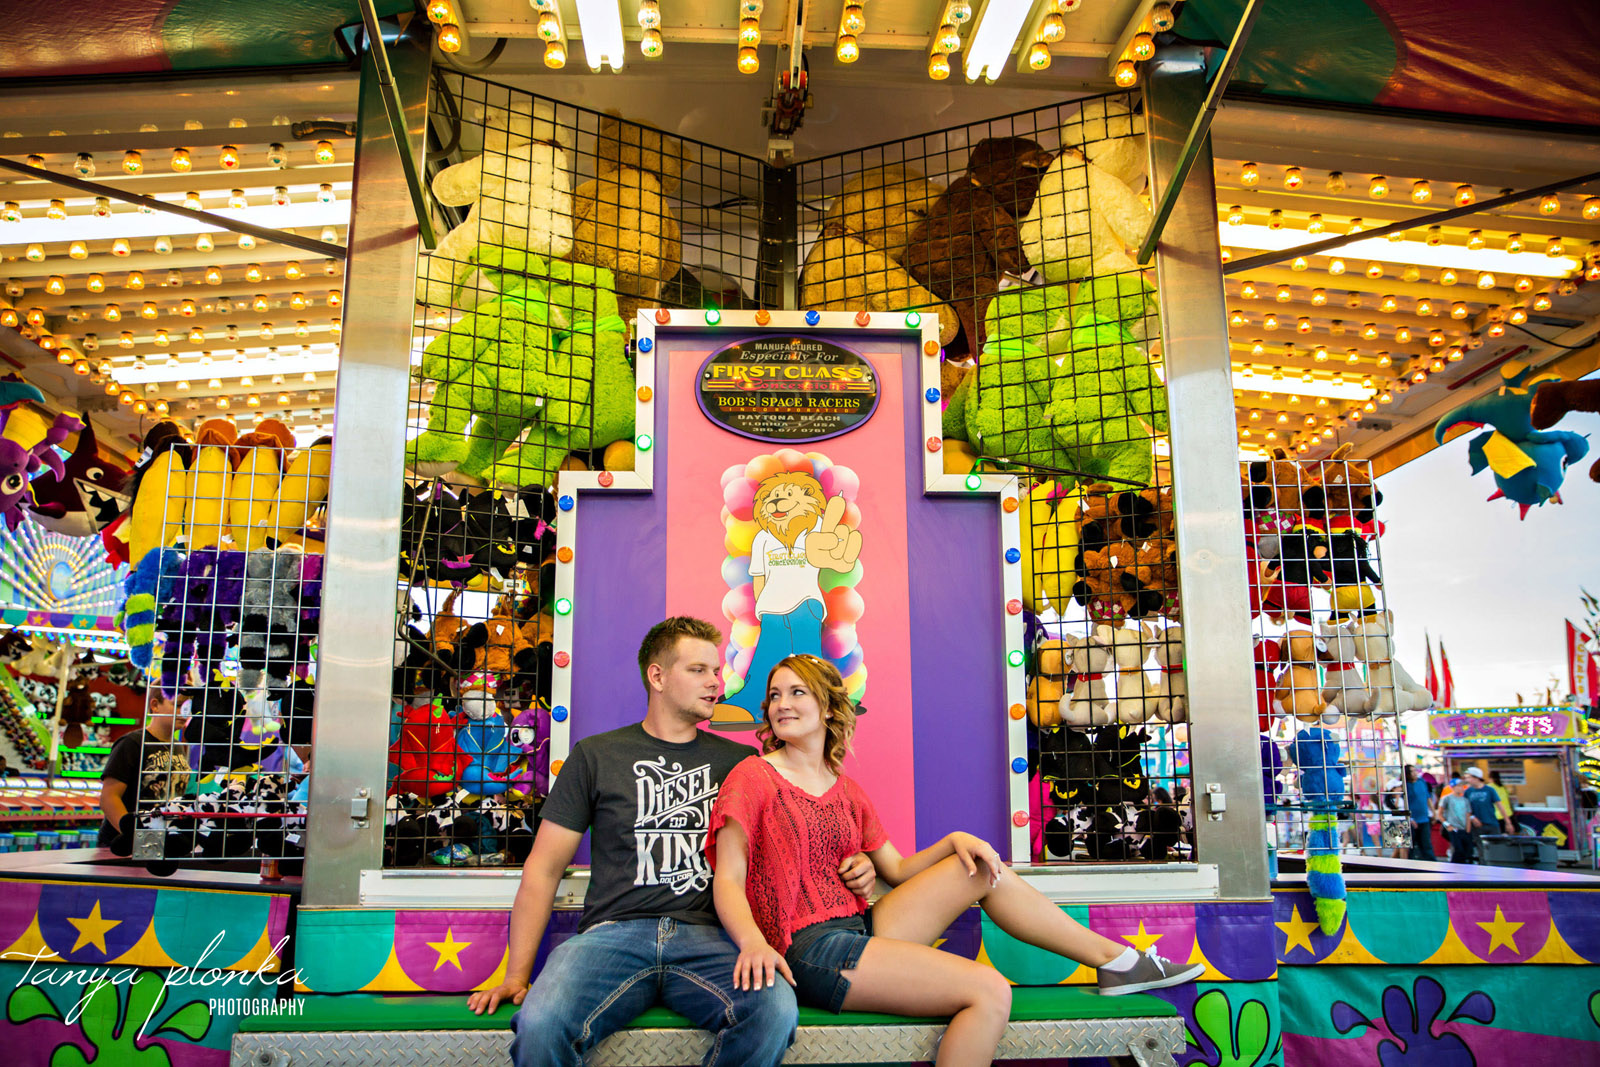 engaged couple sit together in front of fair games at Whoop Up Days